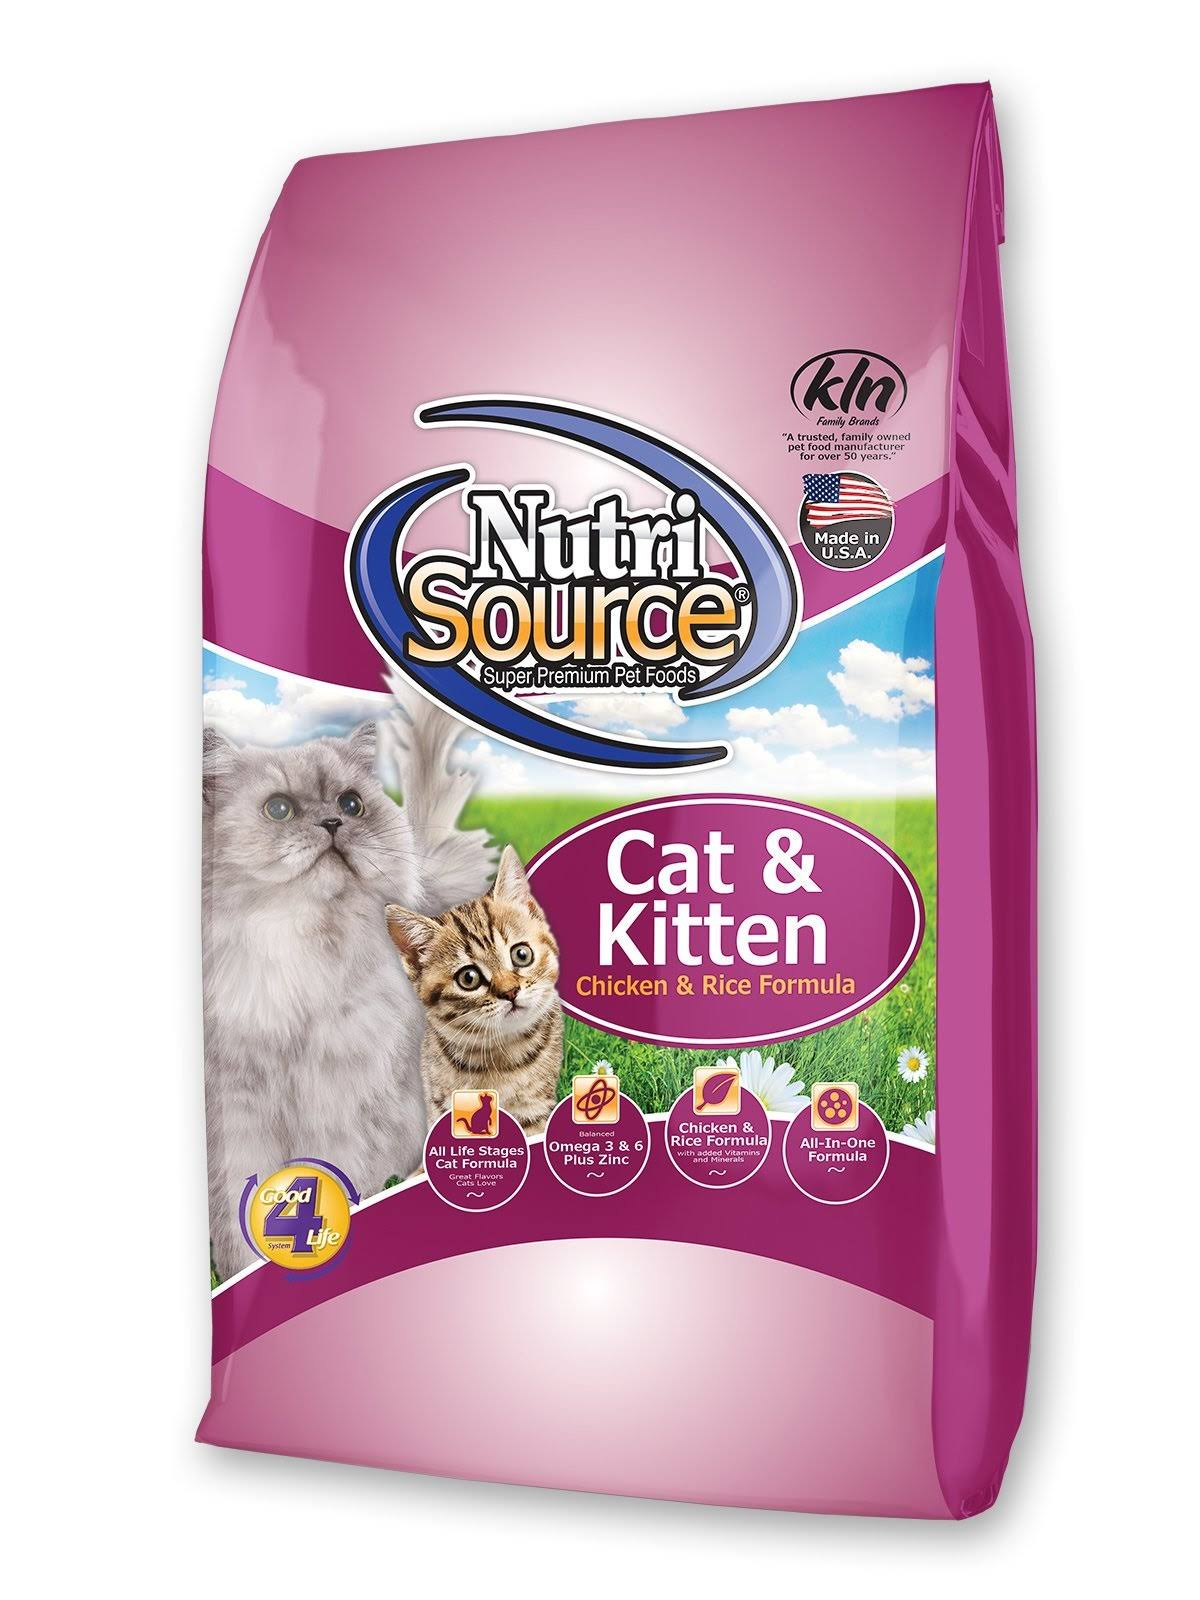 Nutri Source Natural Premium Cat & Kitten Food - Chicken & Rice Formula, 1.5lb